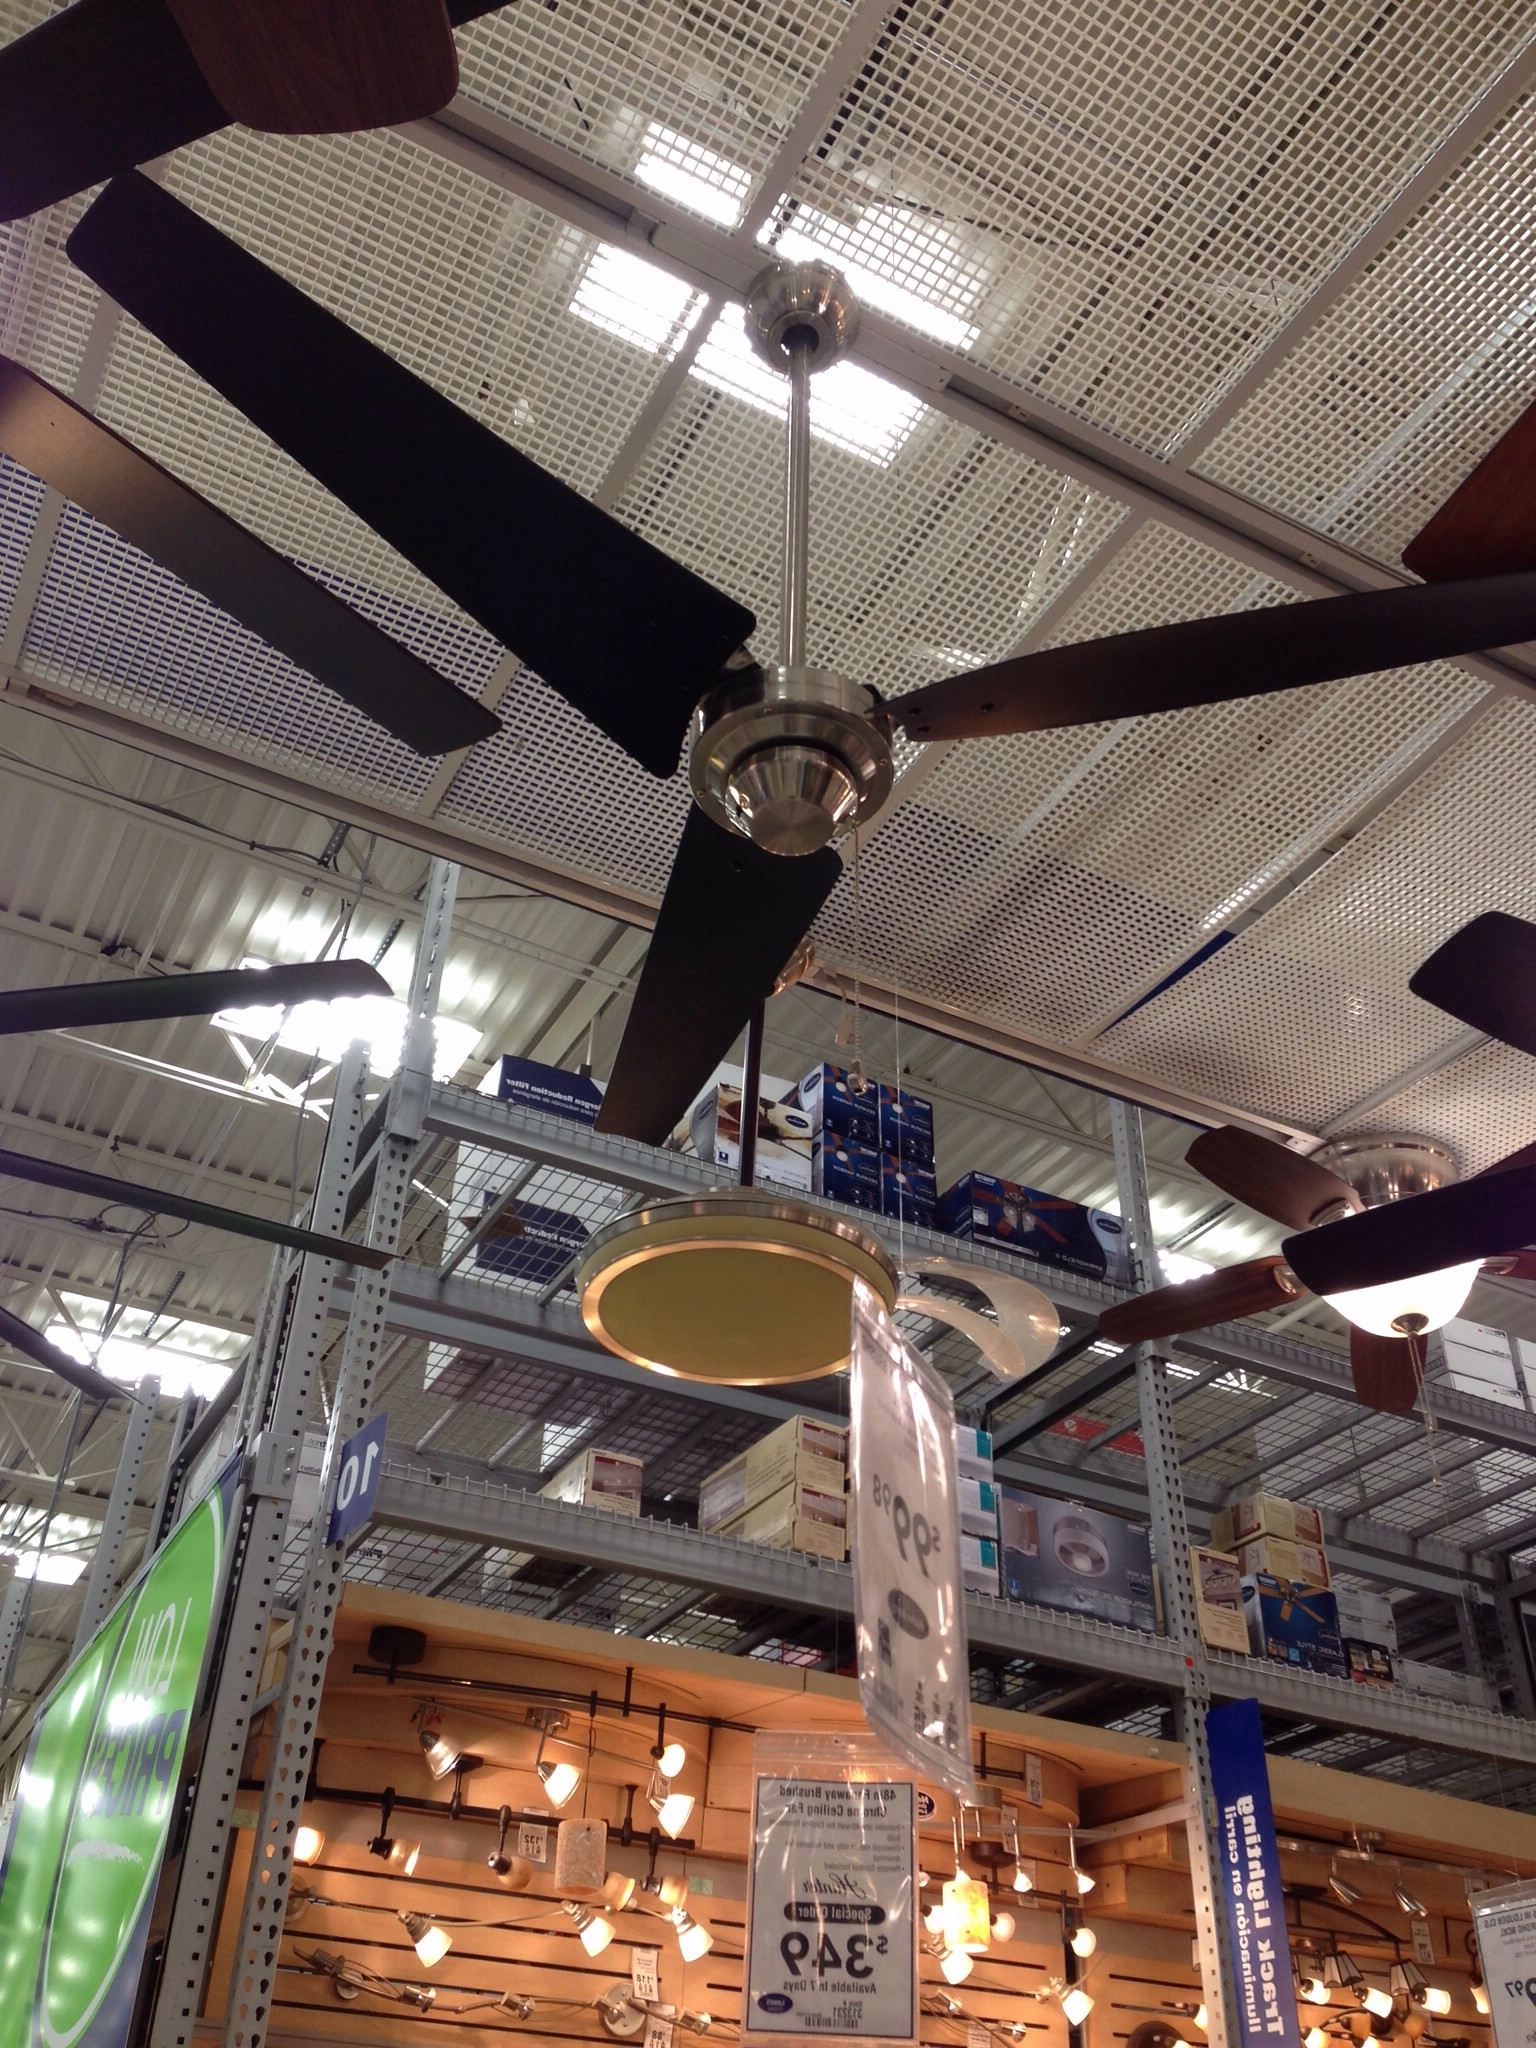 Menards Outdoor Ceiling Fans Lovely Lamps Menards Ceiling Fans Pertaining To Trendy Outdoor Ceiling Fans At Menards (View 10 of 20)